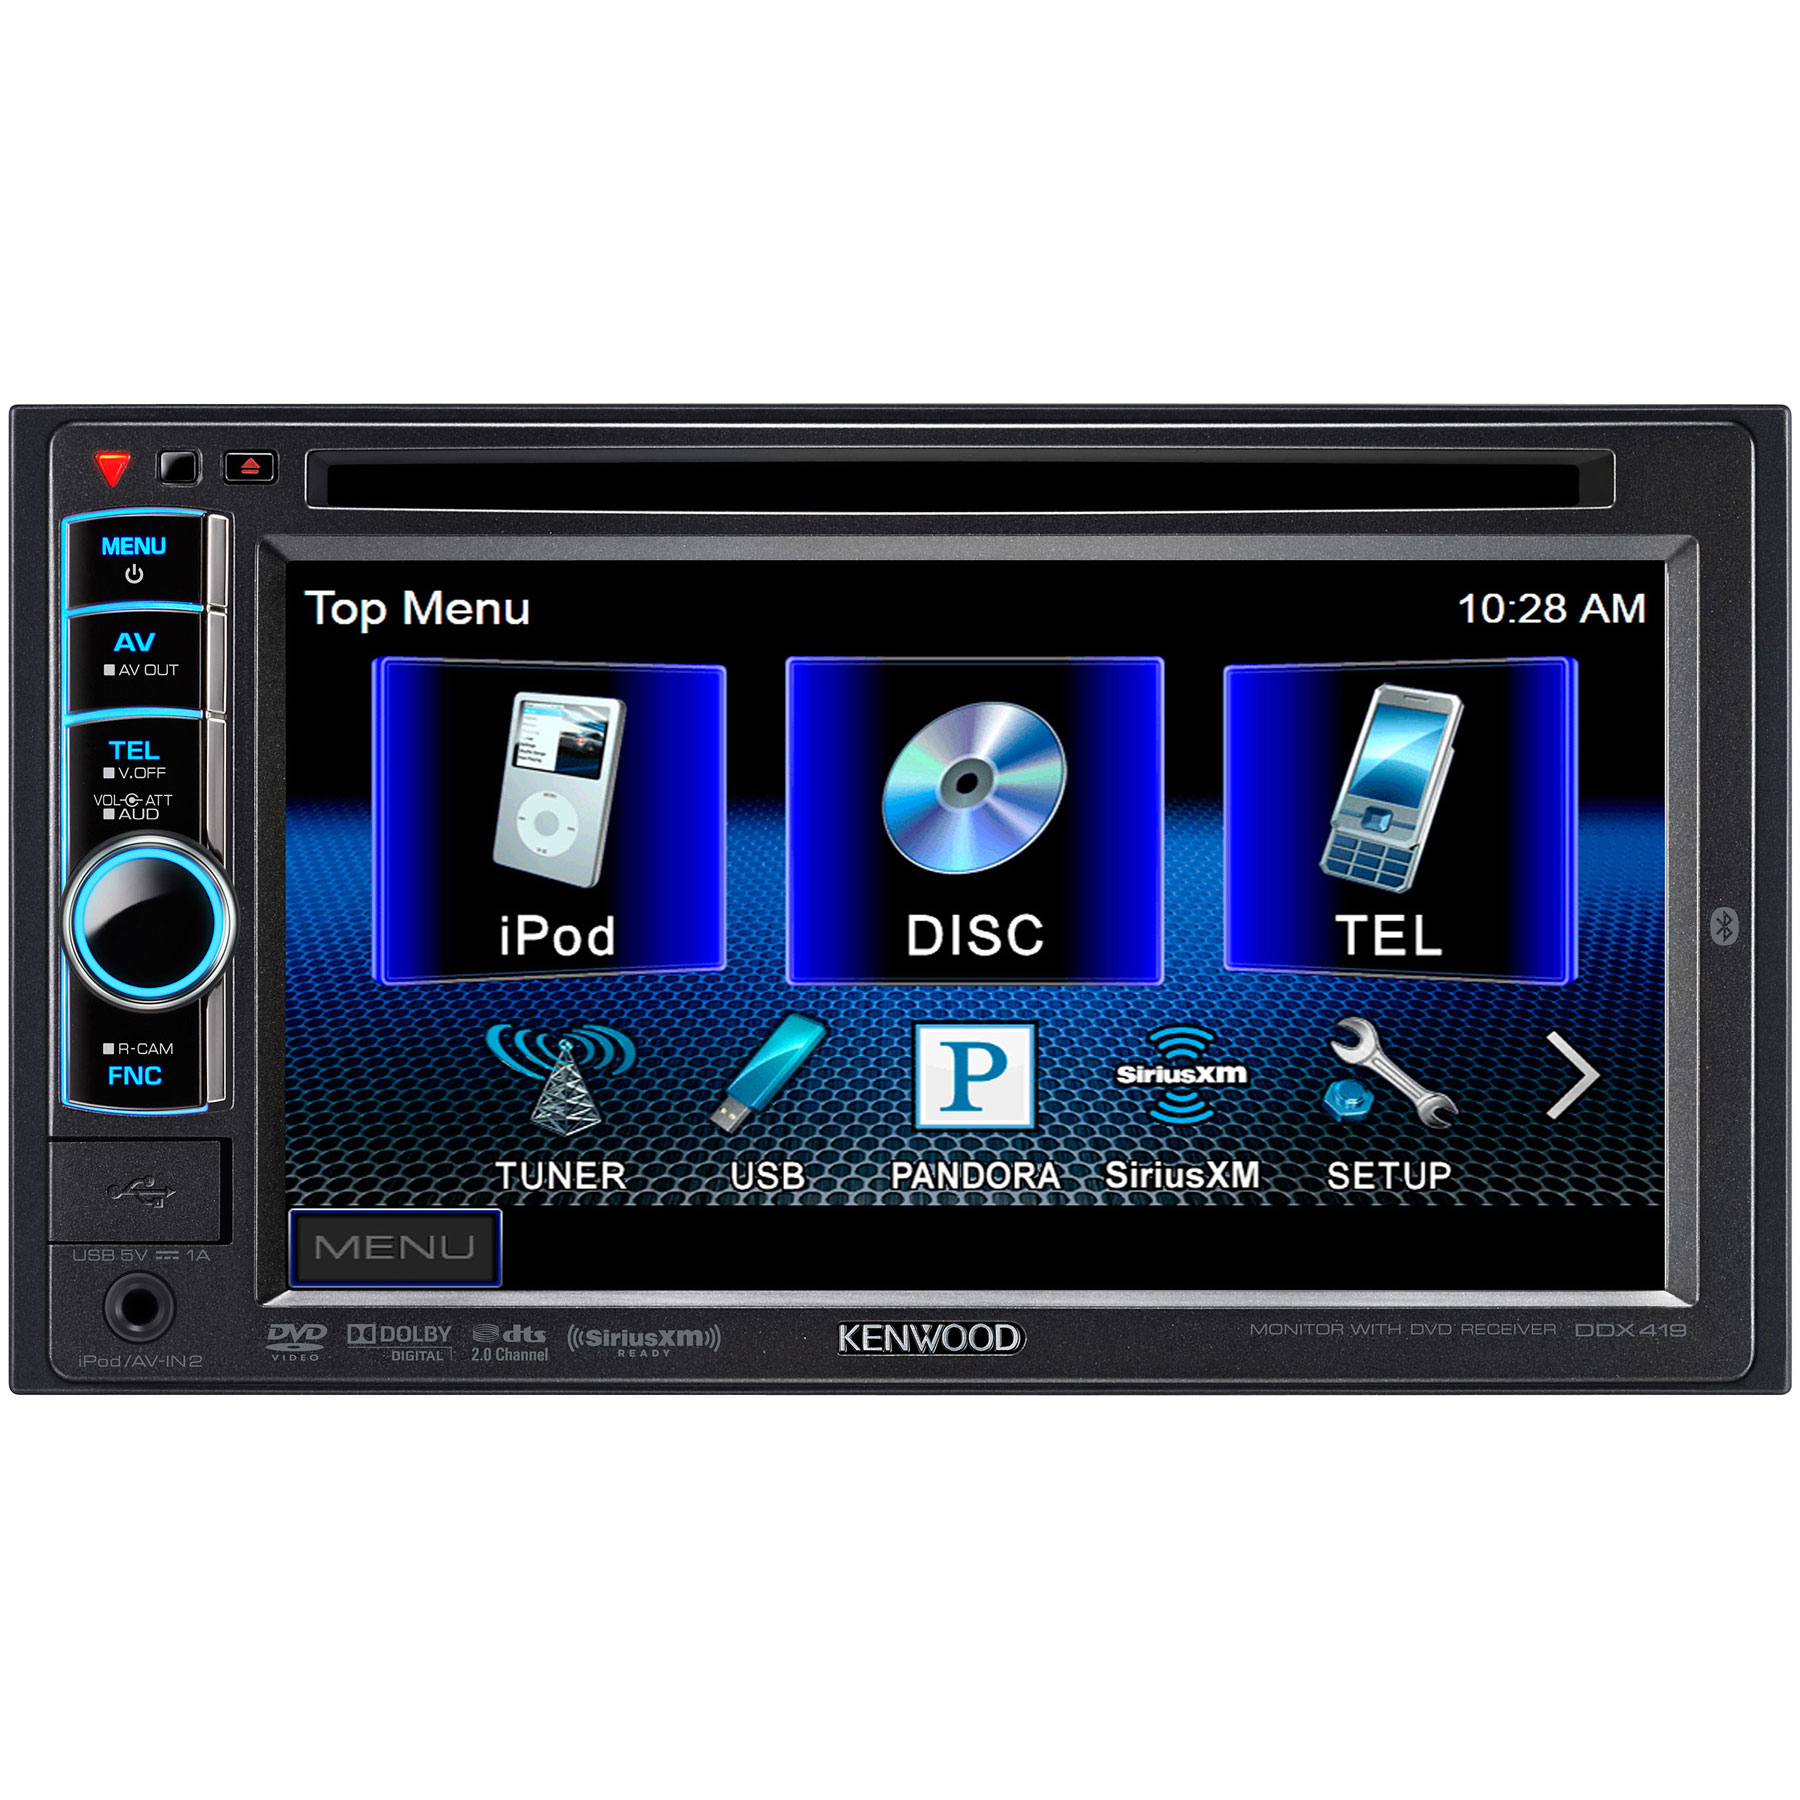 Kenwood Ddx419 61 Touchscreen Dvd Car Stereo Receiver in size 1800 X 1800